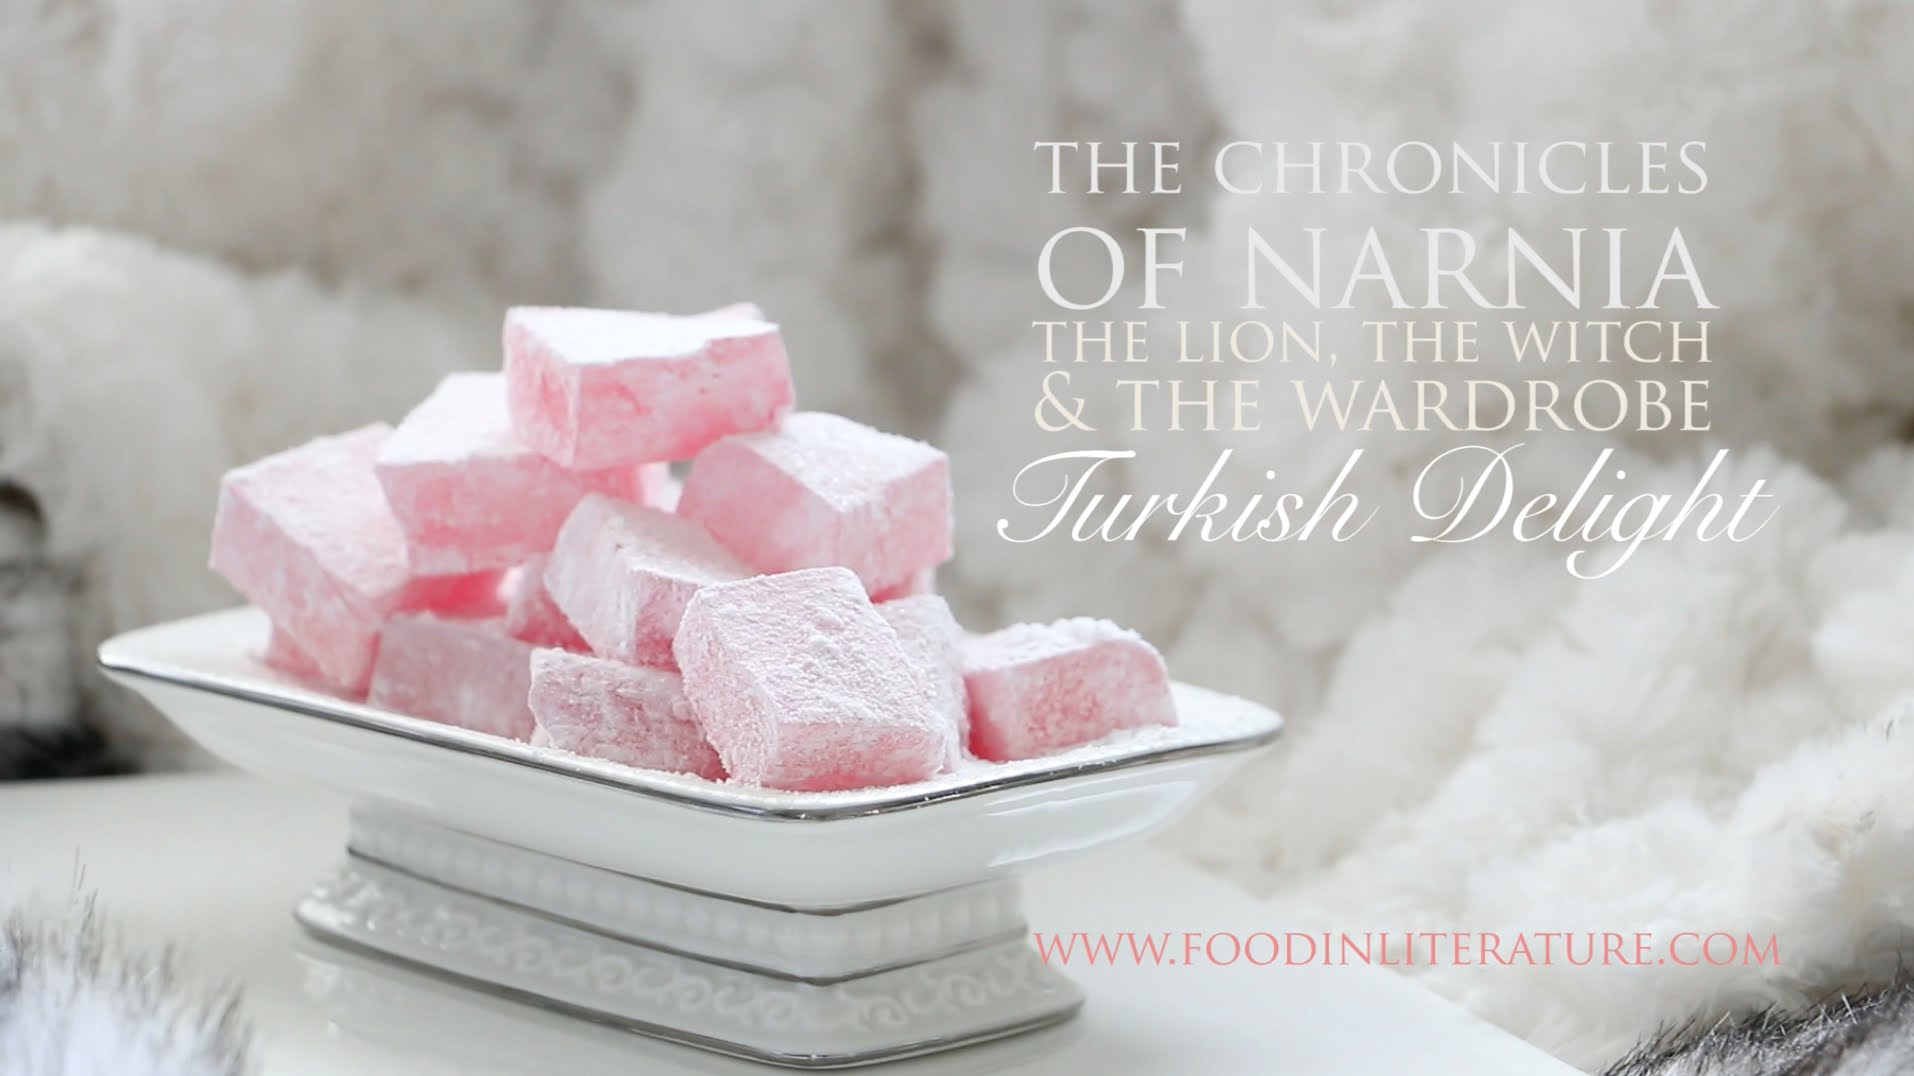 Turkish Delight from The Chronicles of Narnia   Food in Literature ...